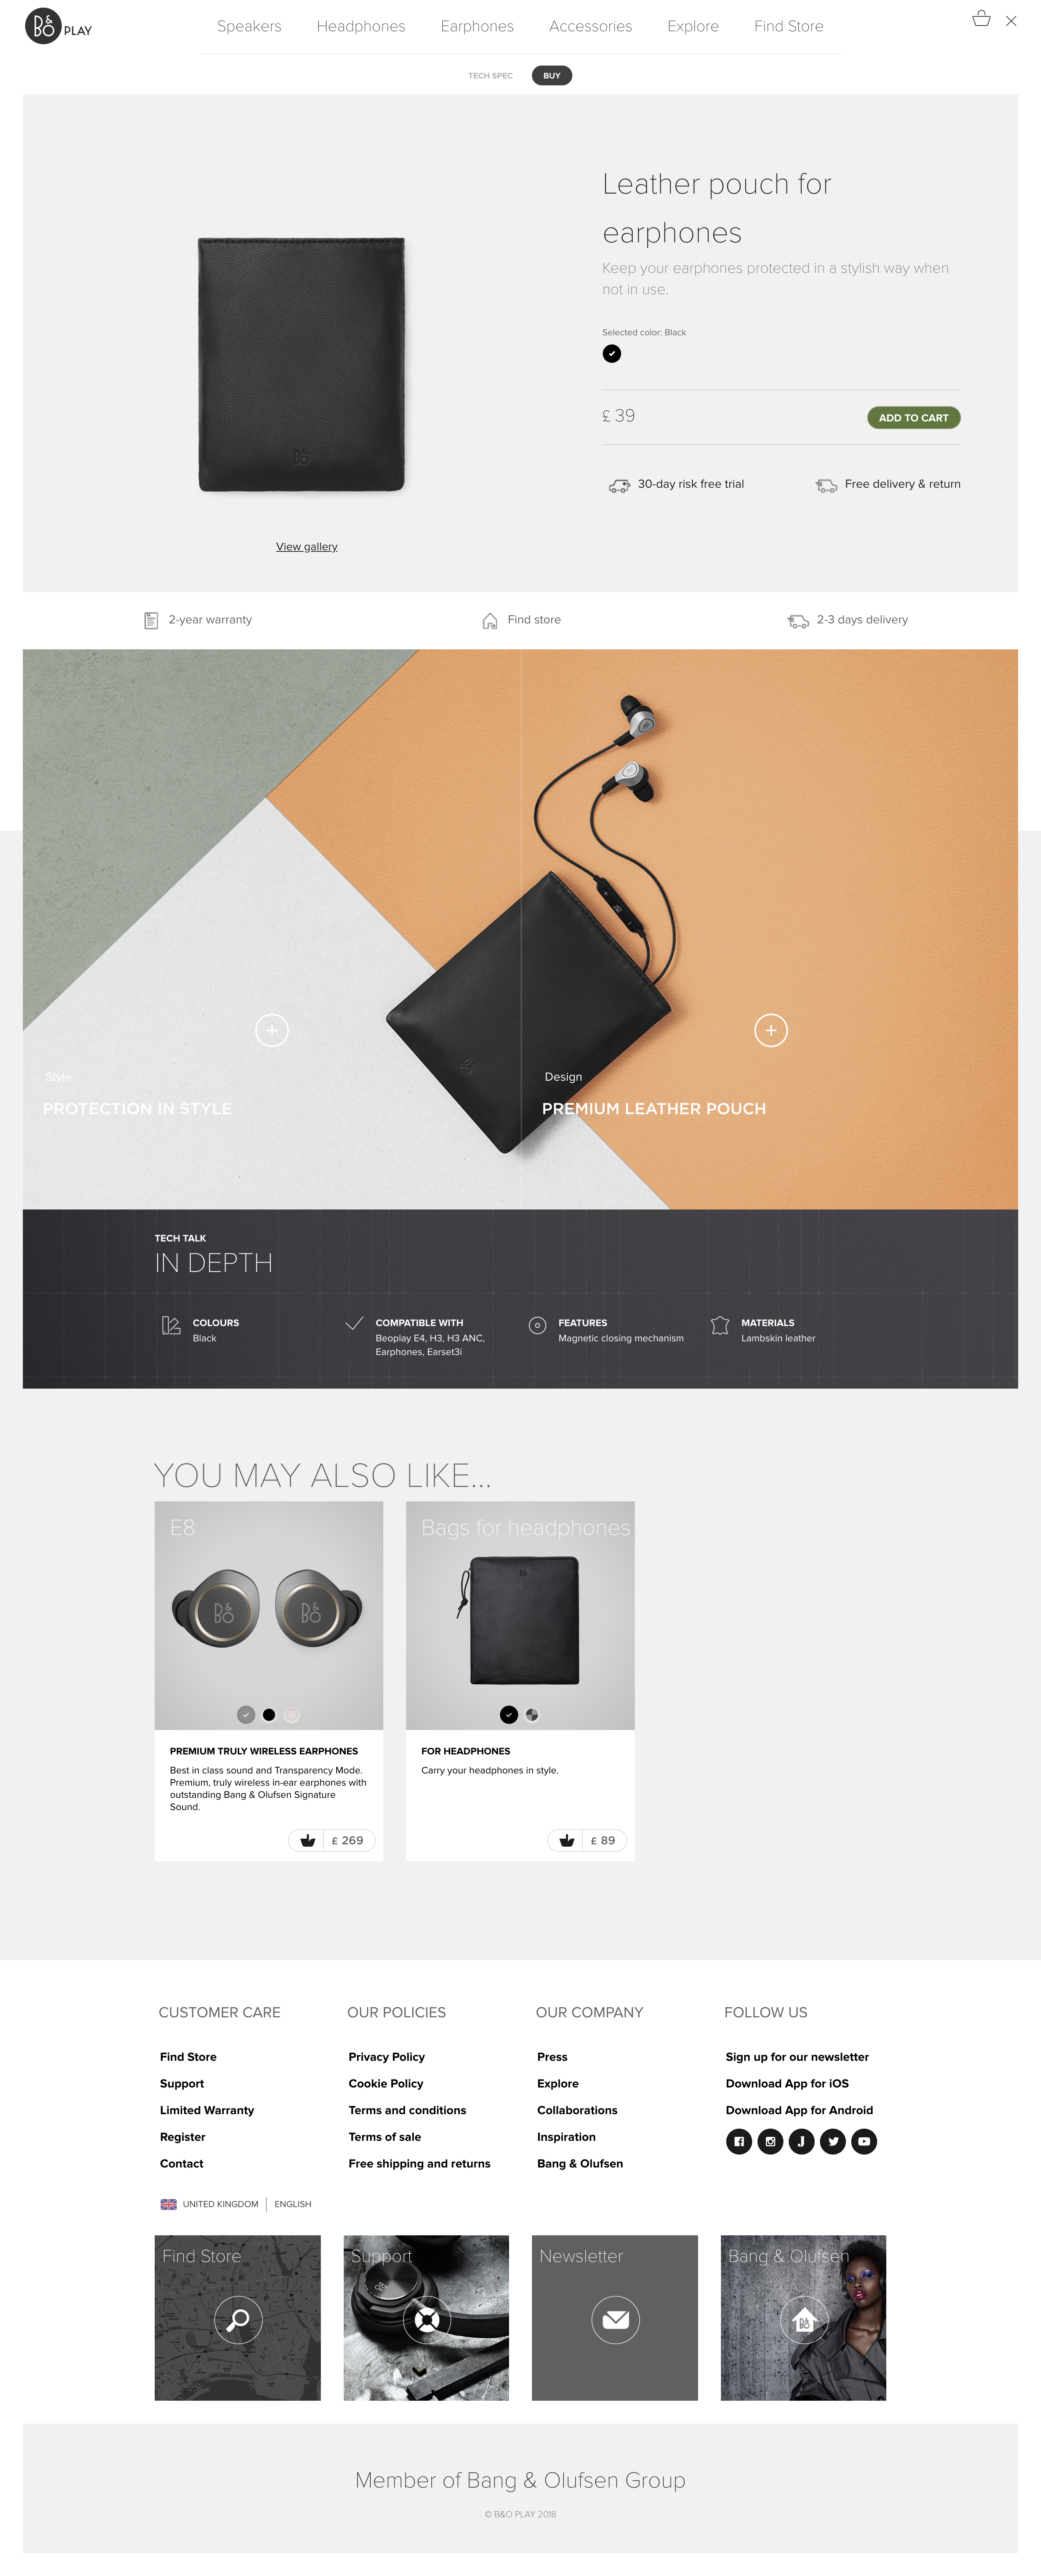 Pin by Blog In on EDITORIAL DESIGN Pinterest